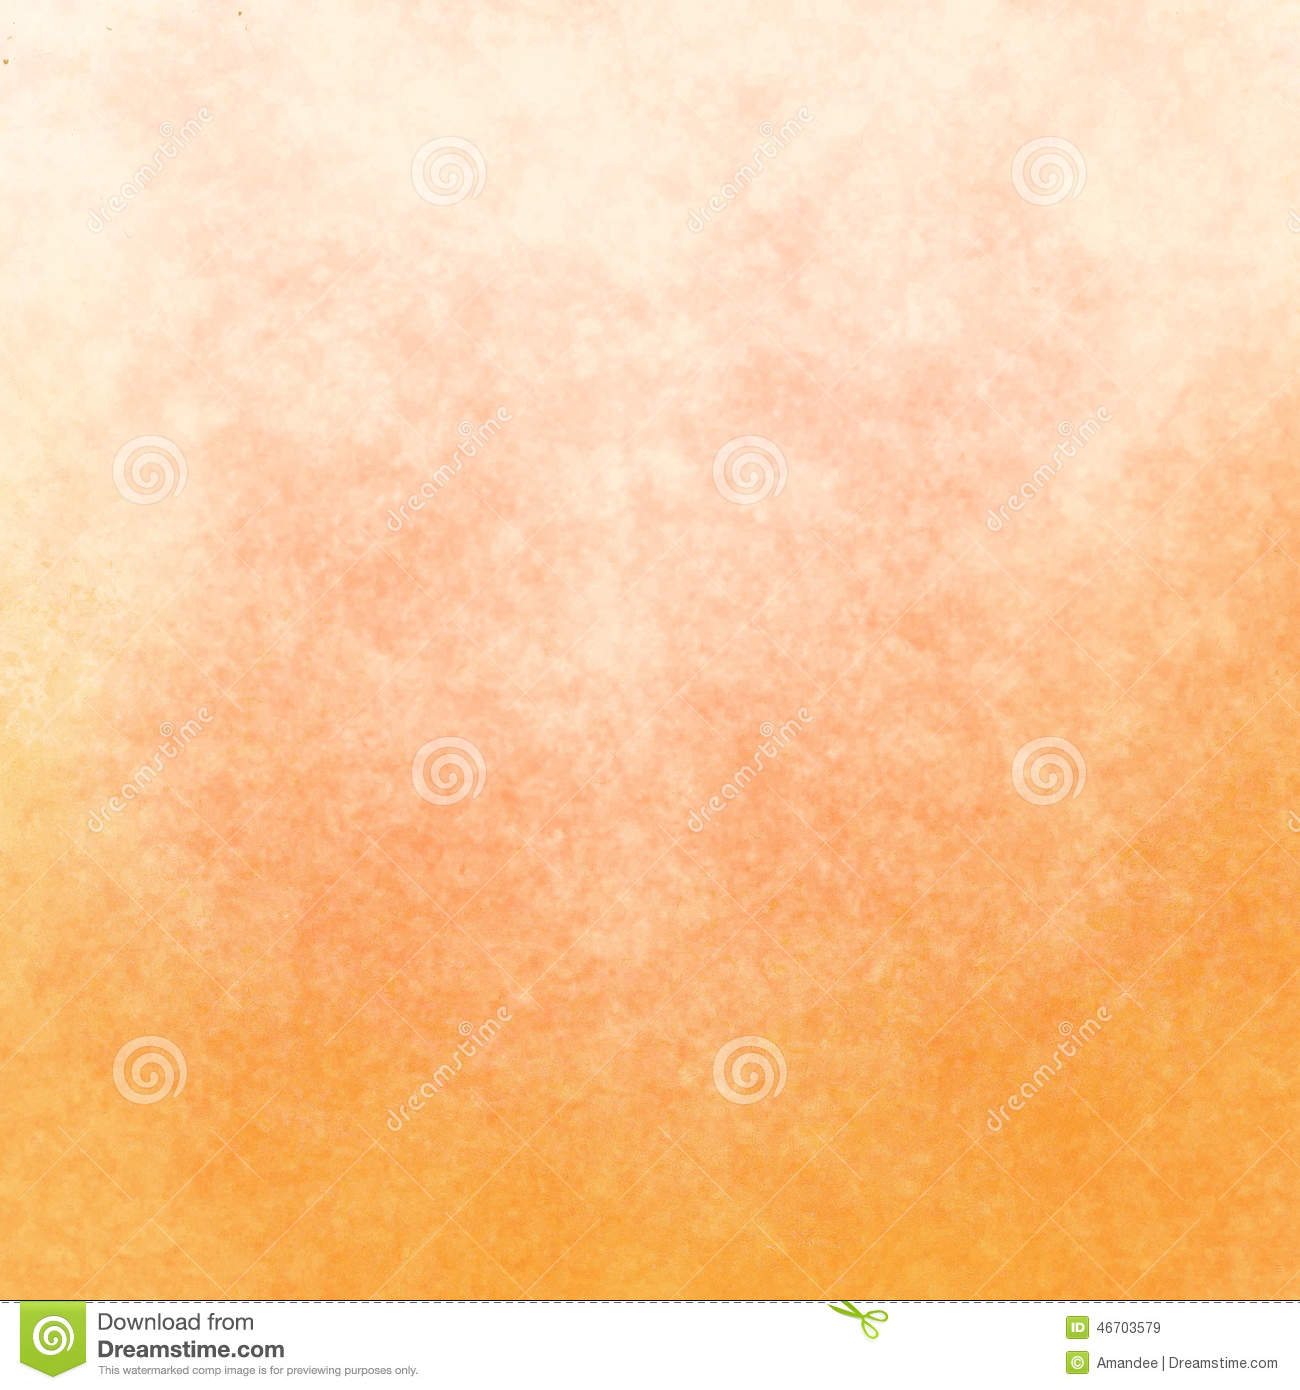 gradient soft yellow to orange color background with texture design